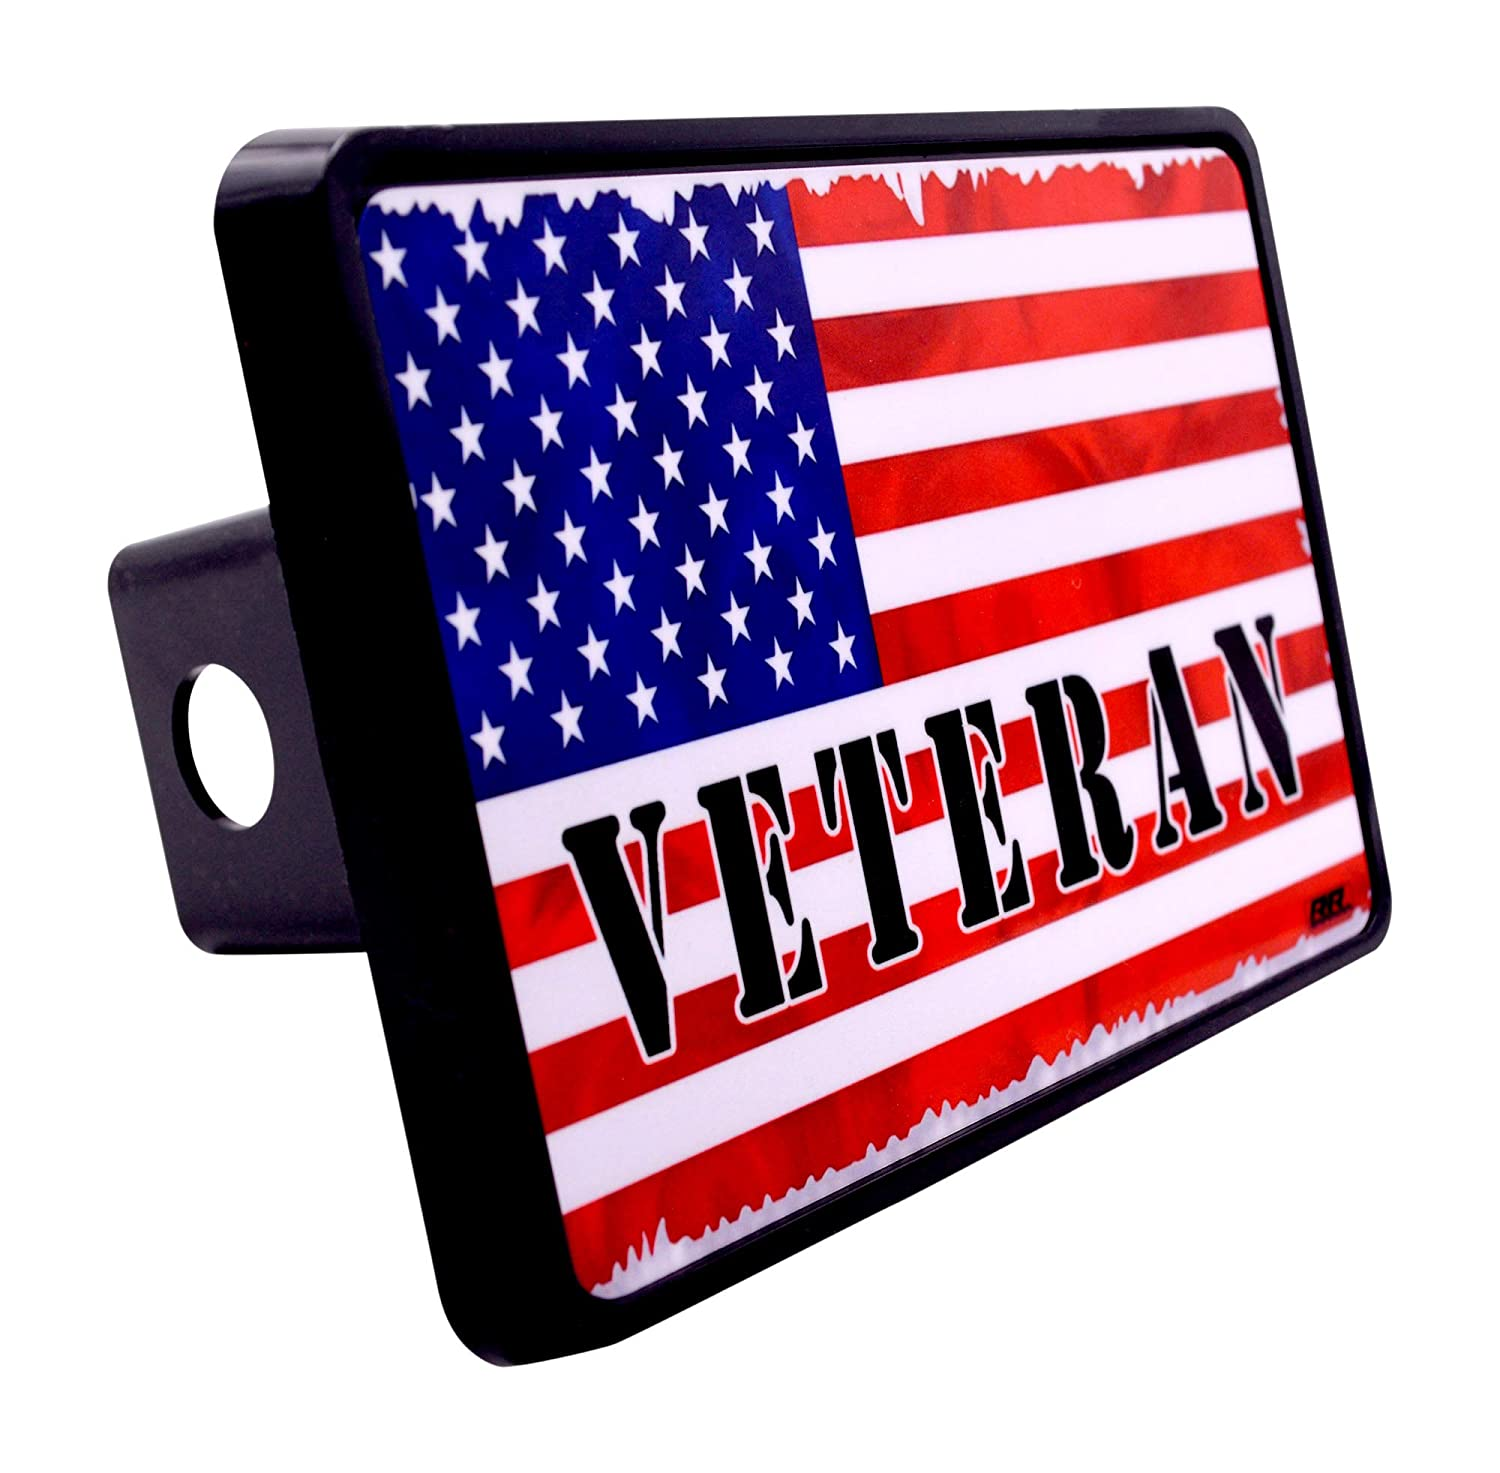 Rogue River Tactical USA American Flag Military Veteran Trailer Hitch Cover Plug US Patriotic USA Old Glory